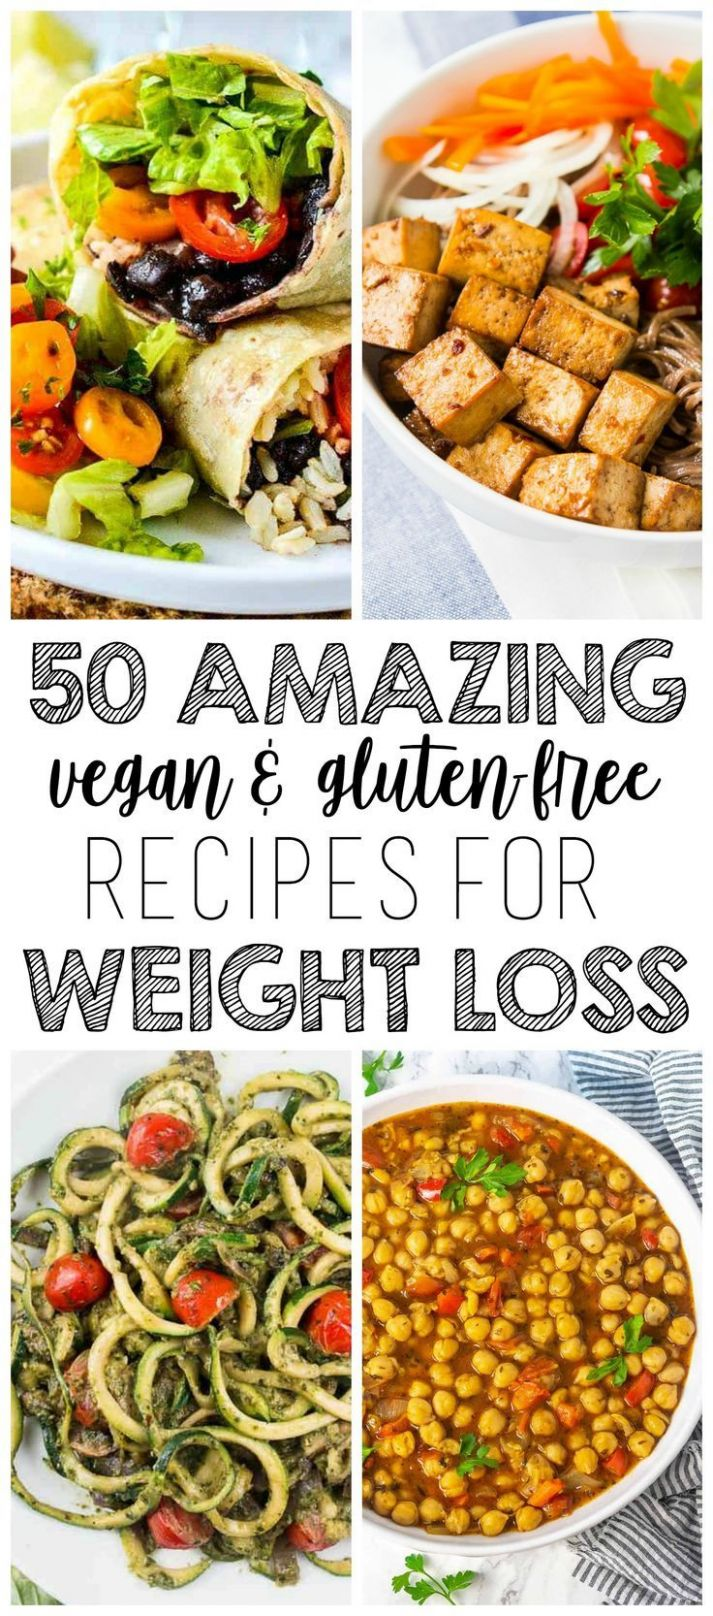 Pin on All Things Vegan - Recipes For Weight Loss Vegetarian